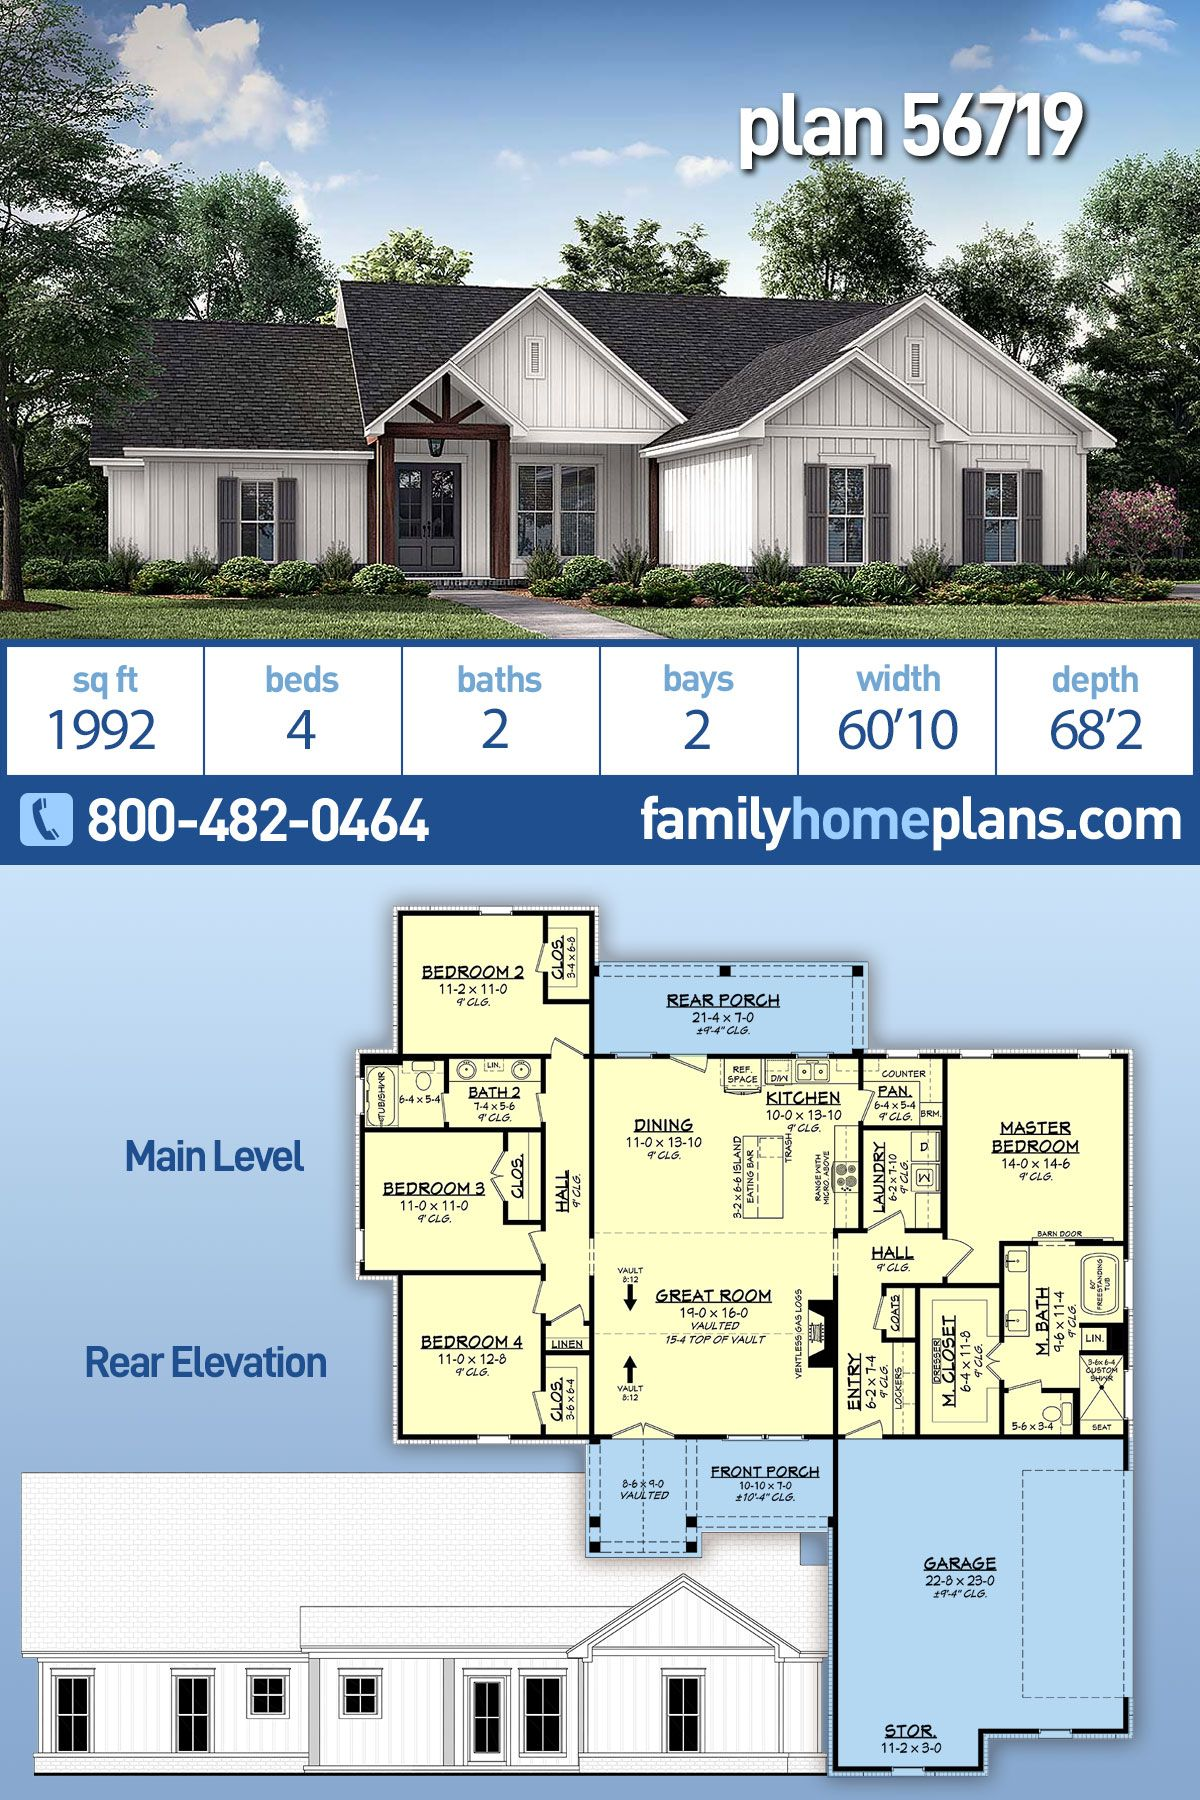 One Story Style House Plan 56719 With 4 Bed 2 Bath 2 Car Garage In 2020 Craftsman House Plans House Plans Country Style House Plans